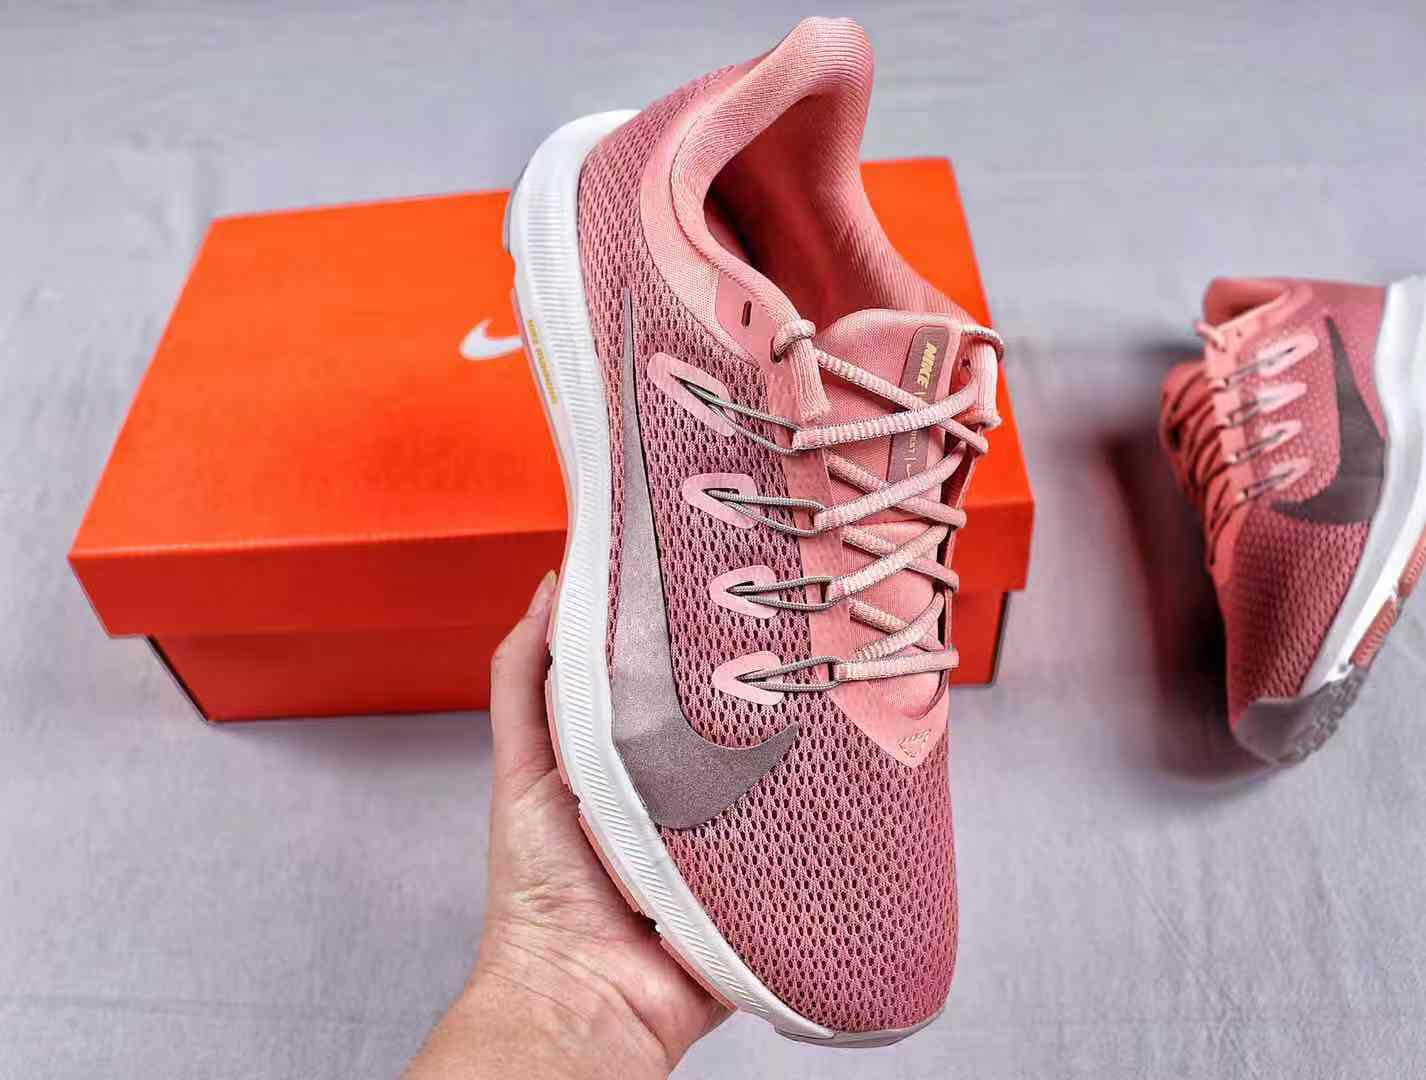 Womens Nike Active Shoes | Kohl's